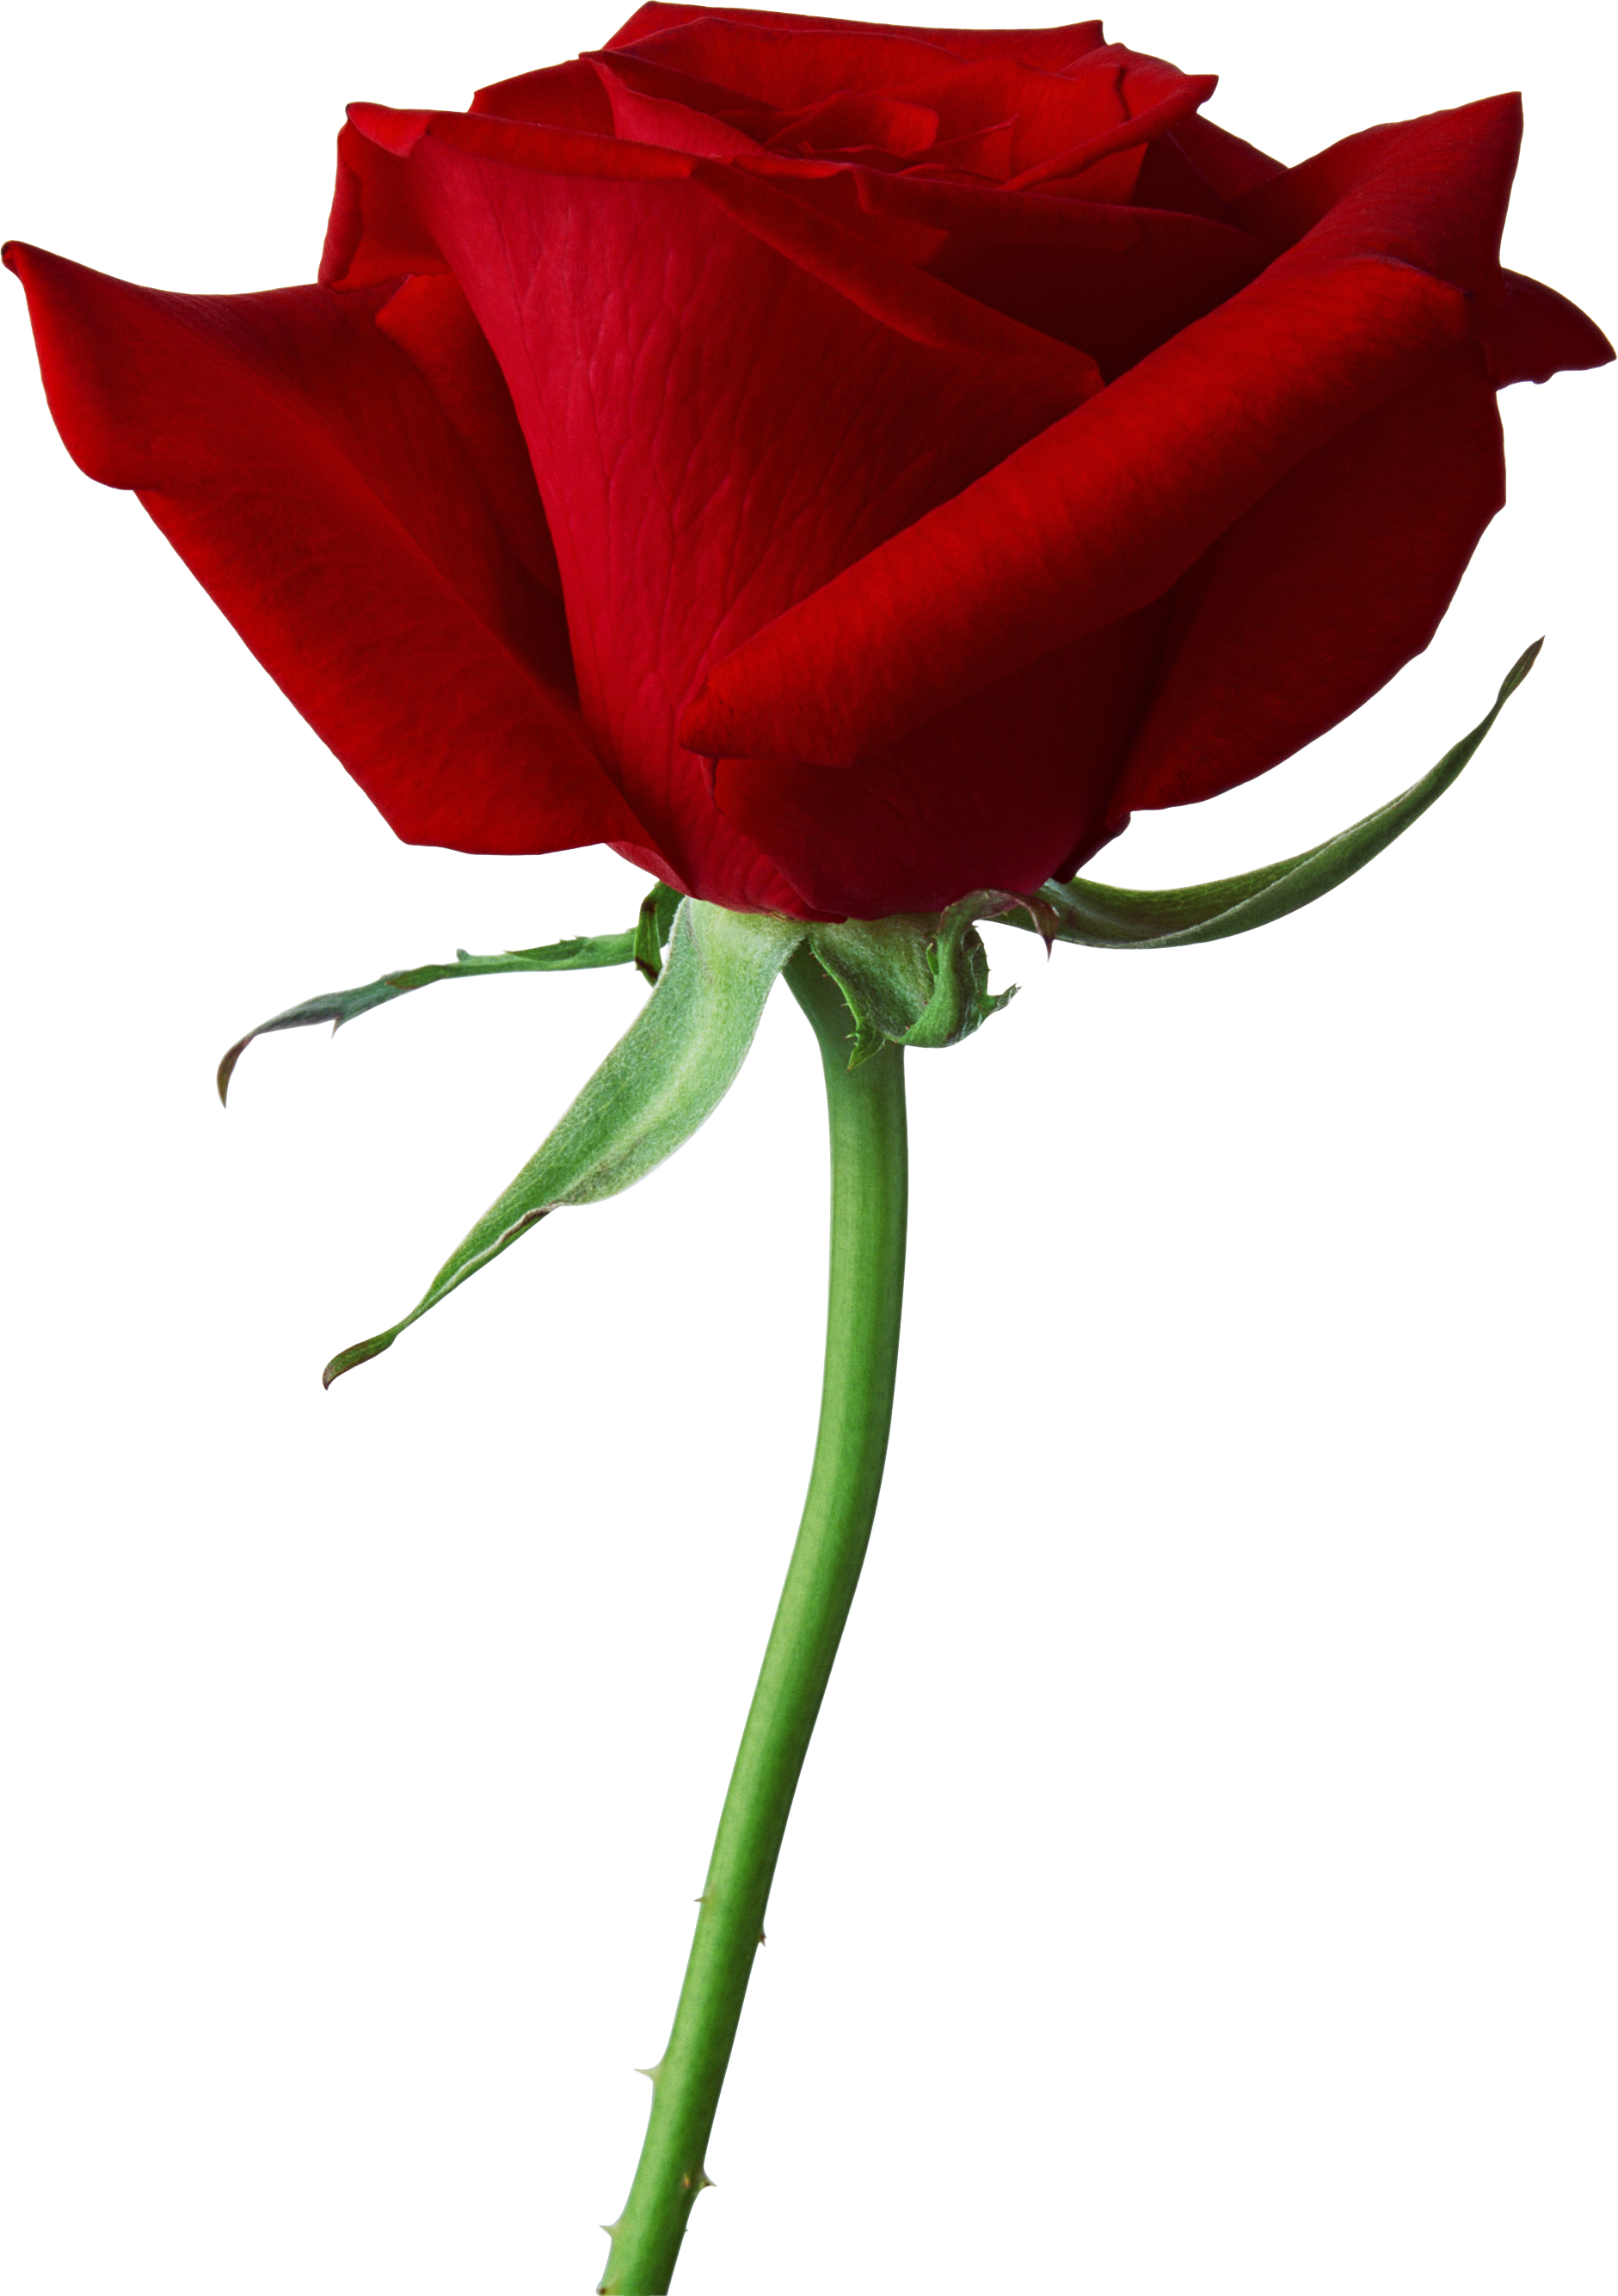 Rose png image, free picture download - Rose PNG